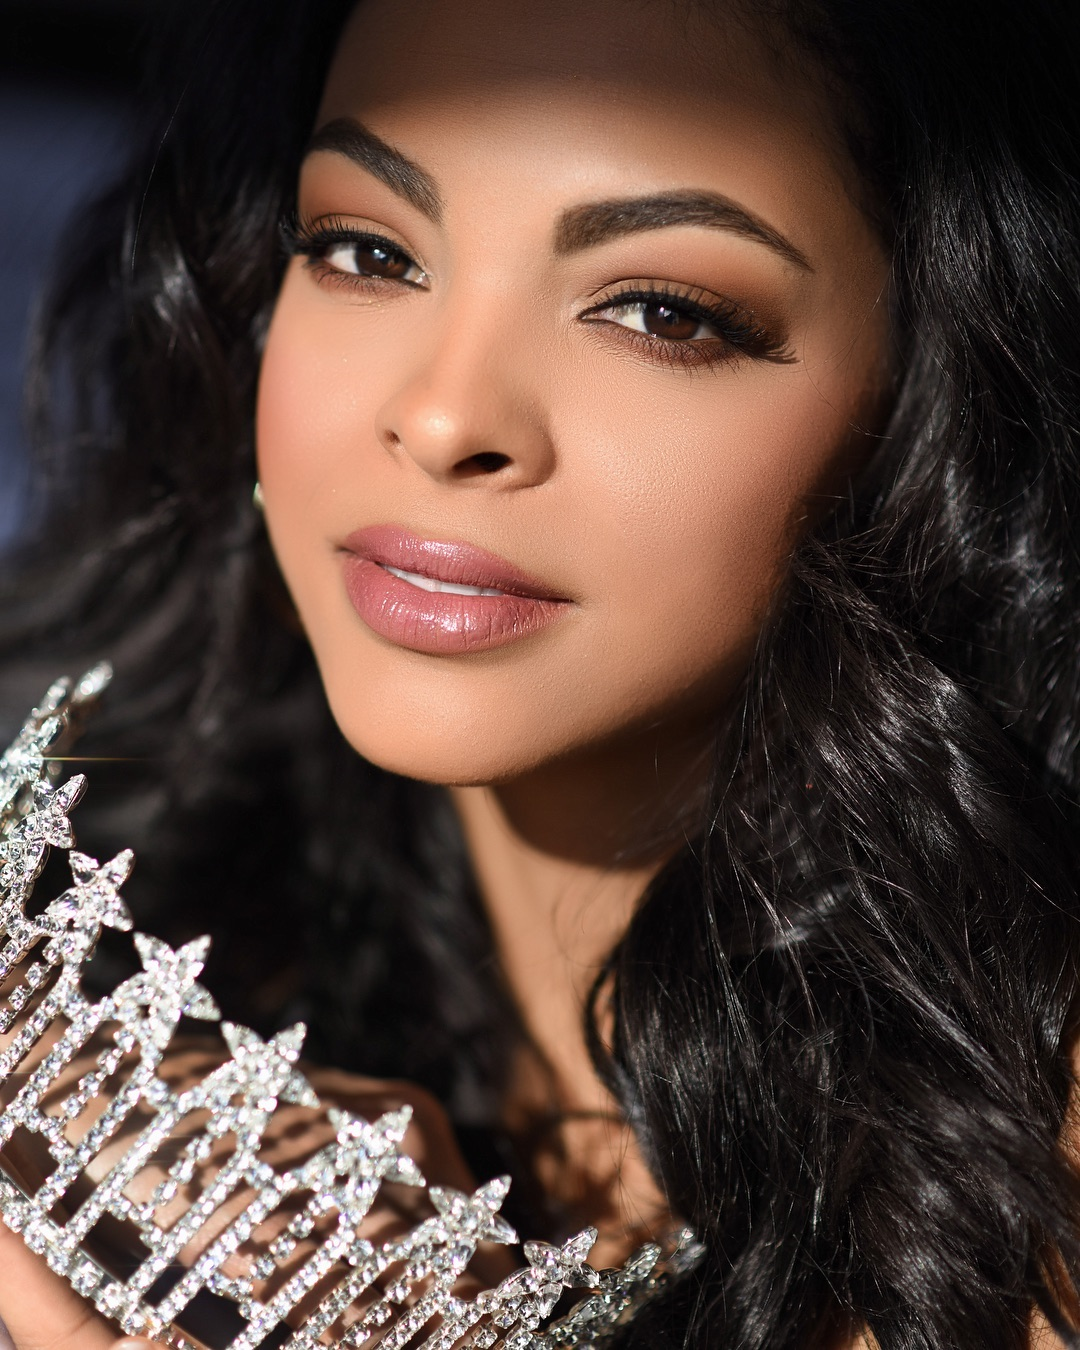 candidatas a miss usa 2019. final: 2 may. - Página 10 Enggwx4h